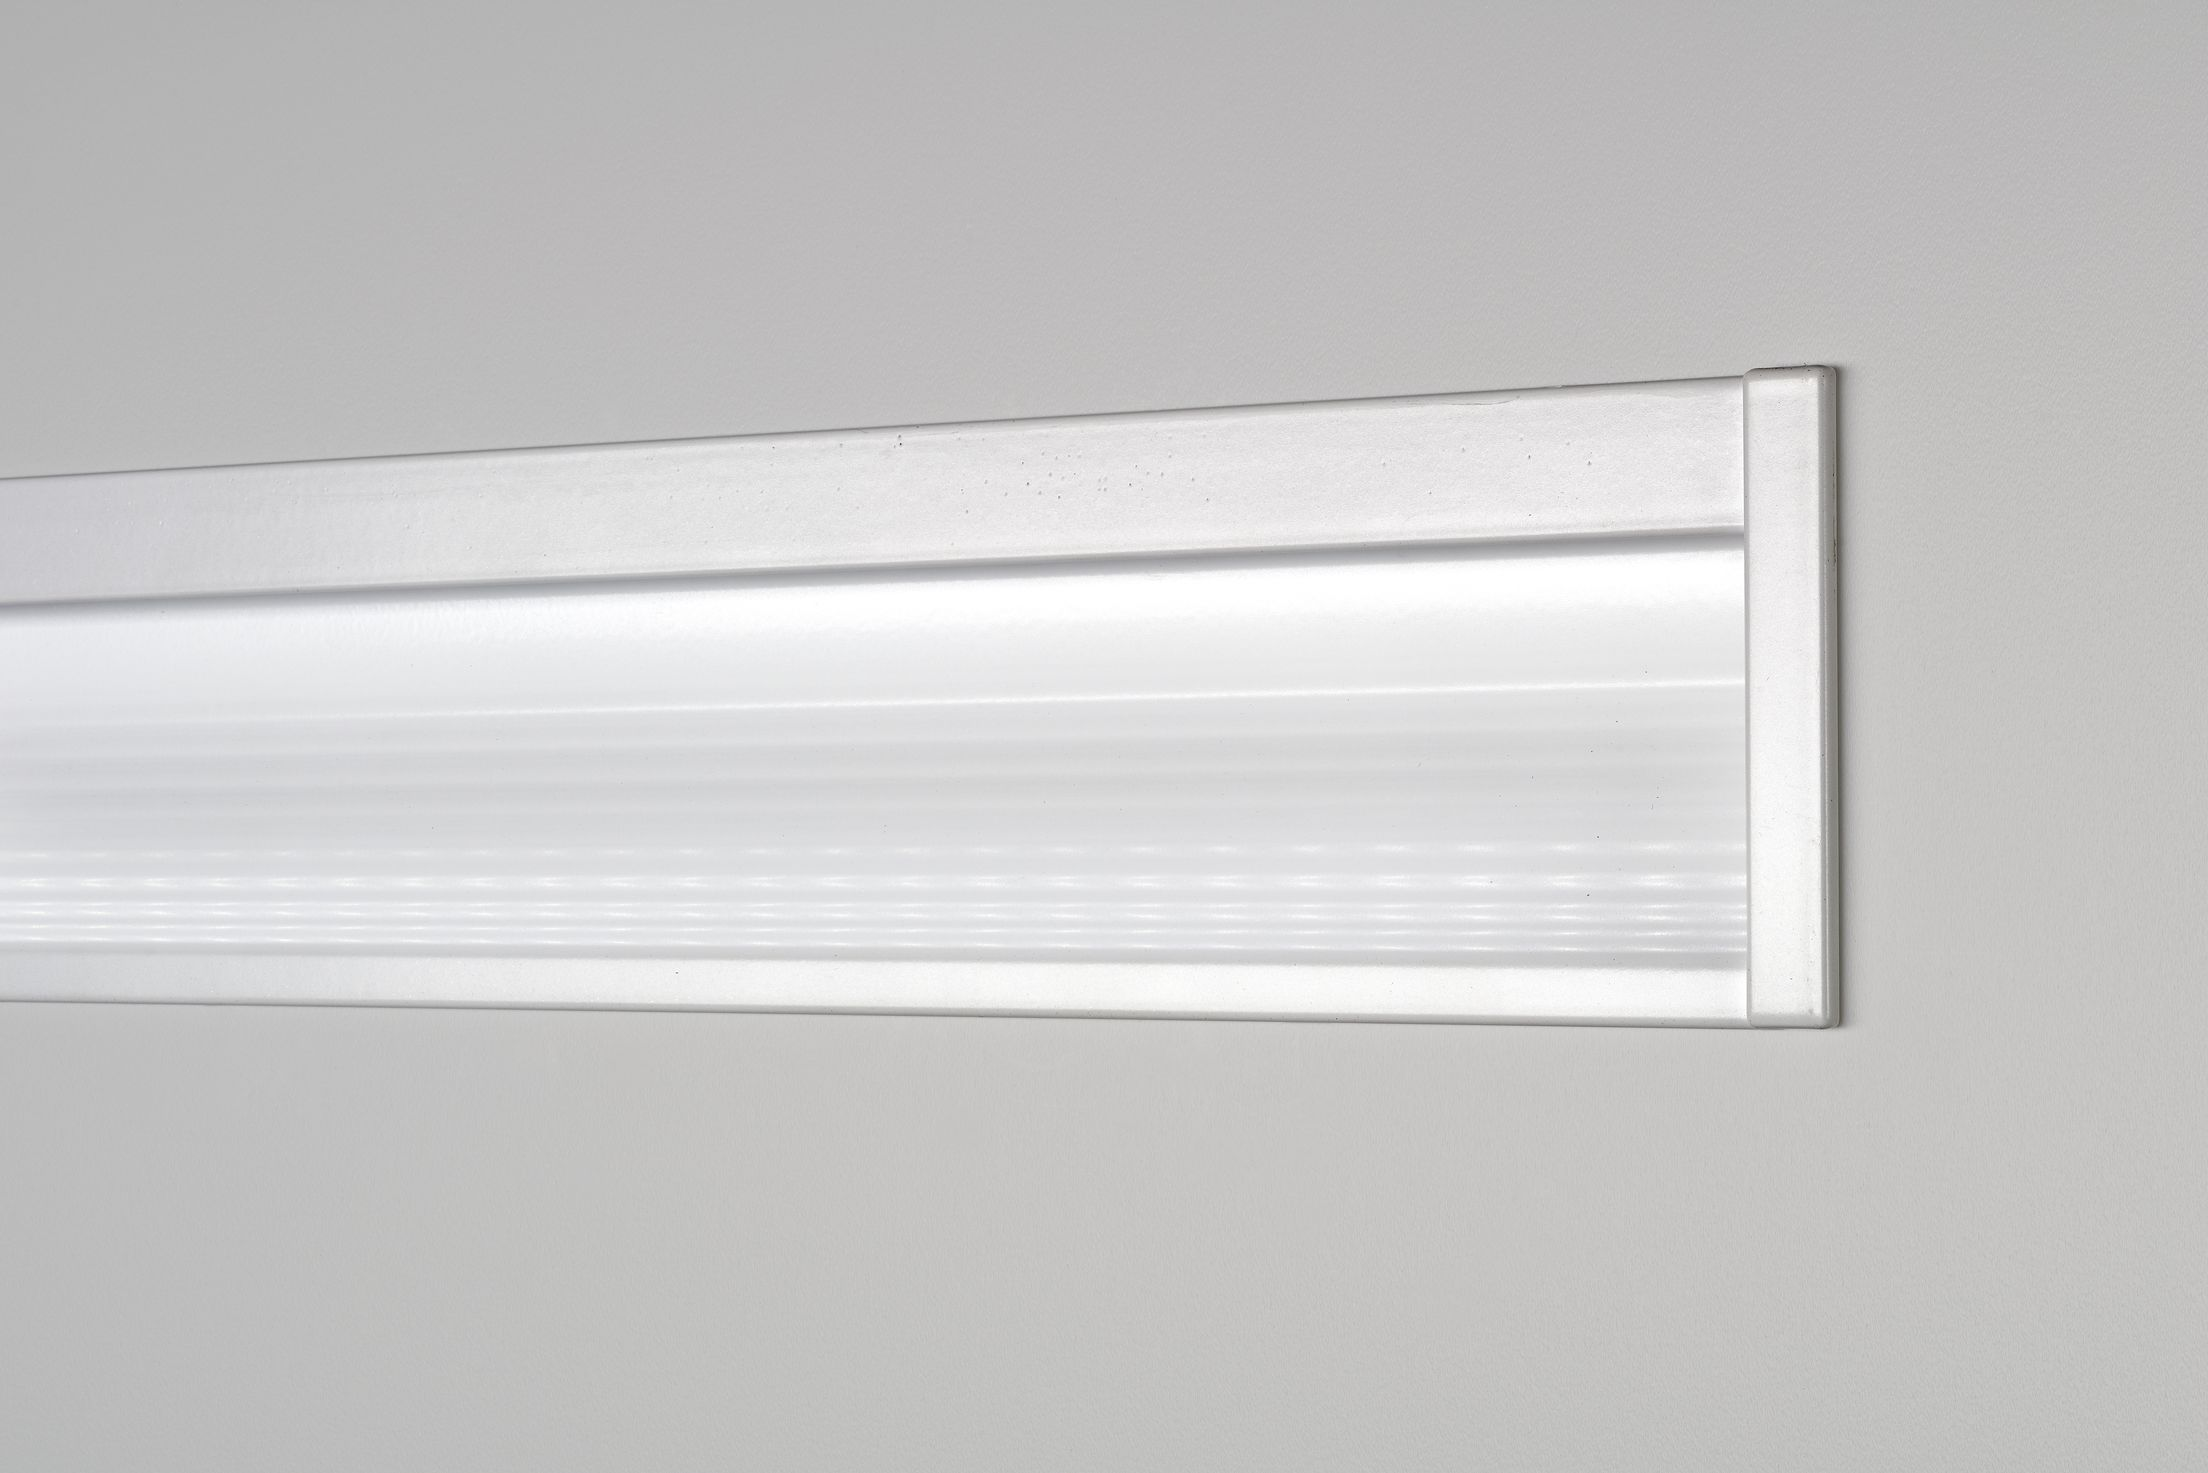 ... Recessed wall light fixture / LED / linear / outdoor ITINERE PURALUCE ... & Recessed wall light fixture / LED / linear / outdoor - ITINERE ... azcodes.com